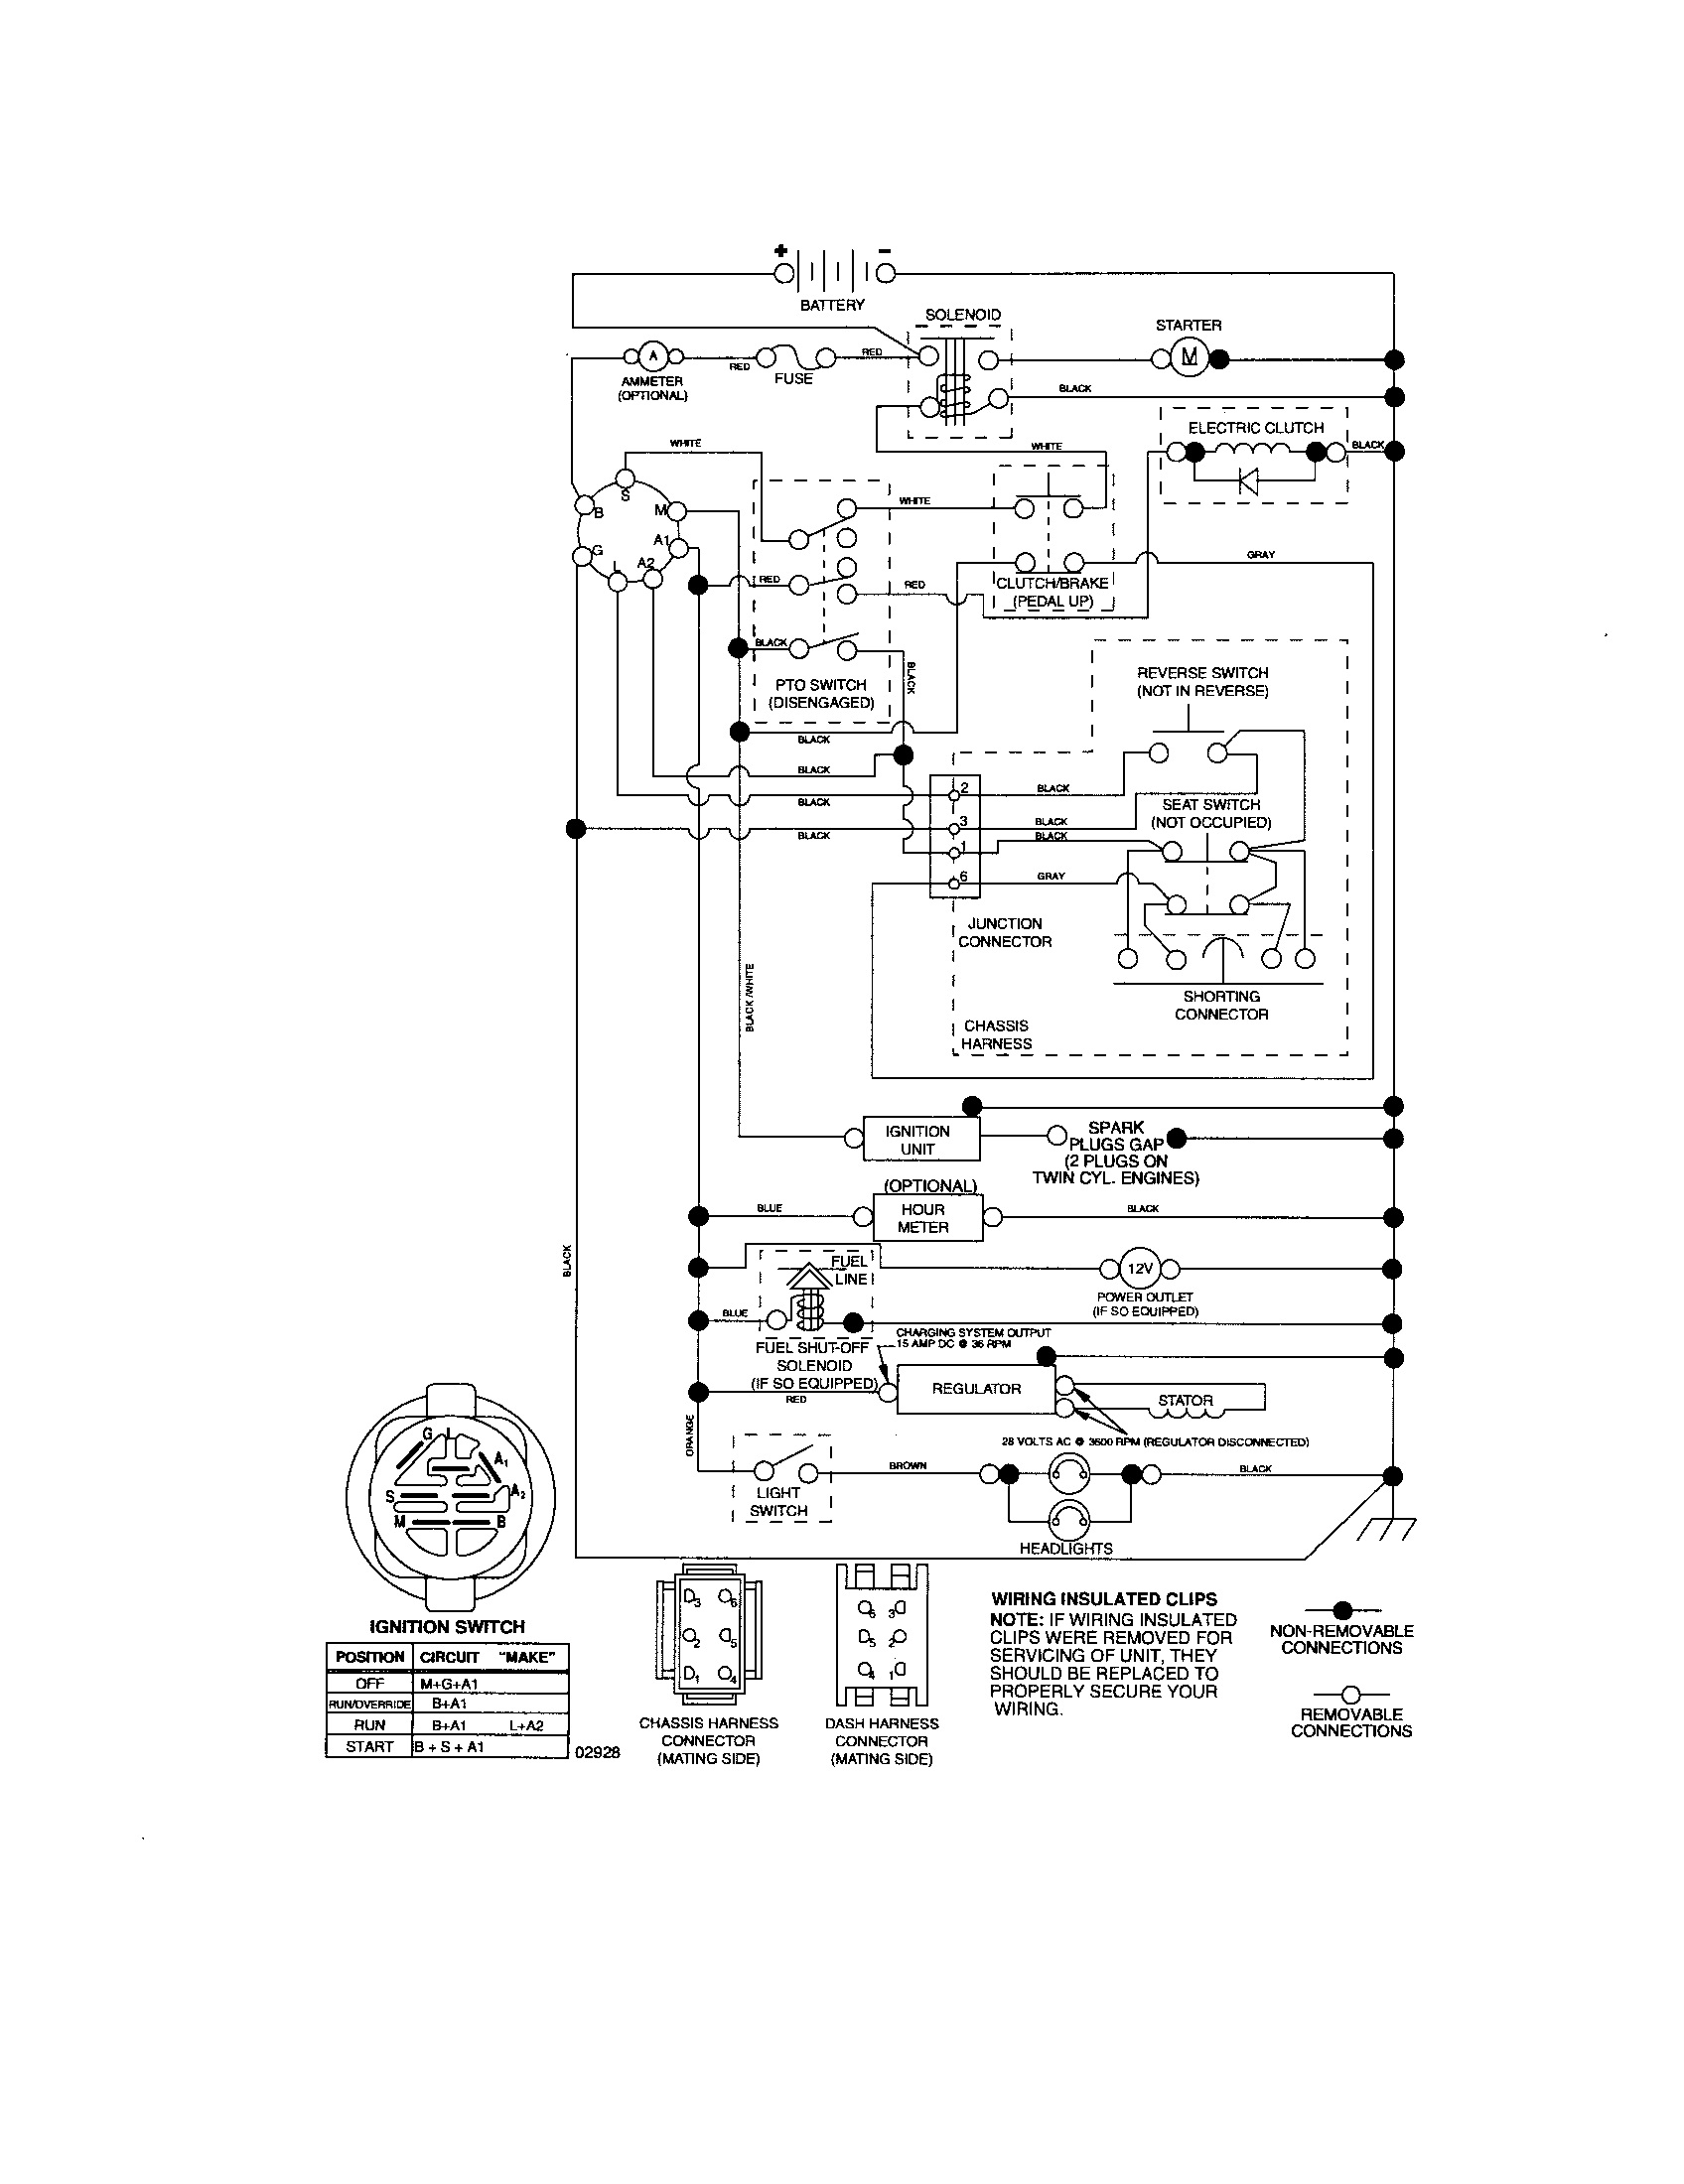 Wiring Diagram For Craftsman Lawn Tractor Mower Clutch ... on john deere 322 parts, john deere 322 starter motor, john deere 322 wire, john deere 425 wiring-diagram, john deere m wiring-diagram, john deere 322 sensor, john deere 322 valve, john deere electrical diagrams, john deere 322 manual, john deere 345 wiring-diagram, craftsman riding tractor wiring diagram, john deere 325 wiring-diagram, john deere 4010 wiring-diagram, john deere z225 wiring-diagram, john deere 180 wiring-diagram, john deere 322 radiator, john deere 322 spark plugs, john deere 155c wiring-diagram, john deere 445 wiring-diagram, john deere 455 wiring-diagram,